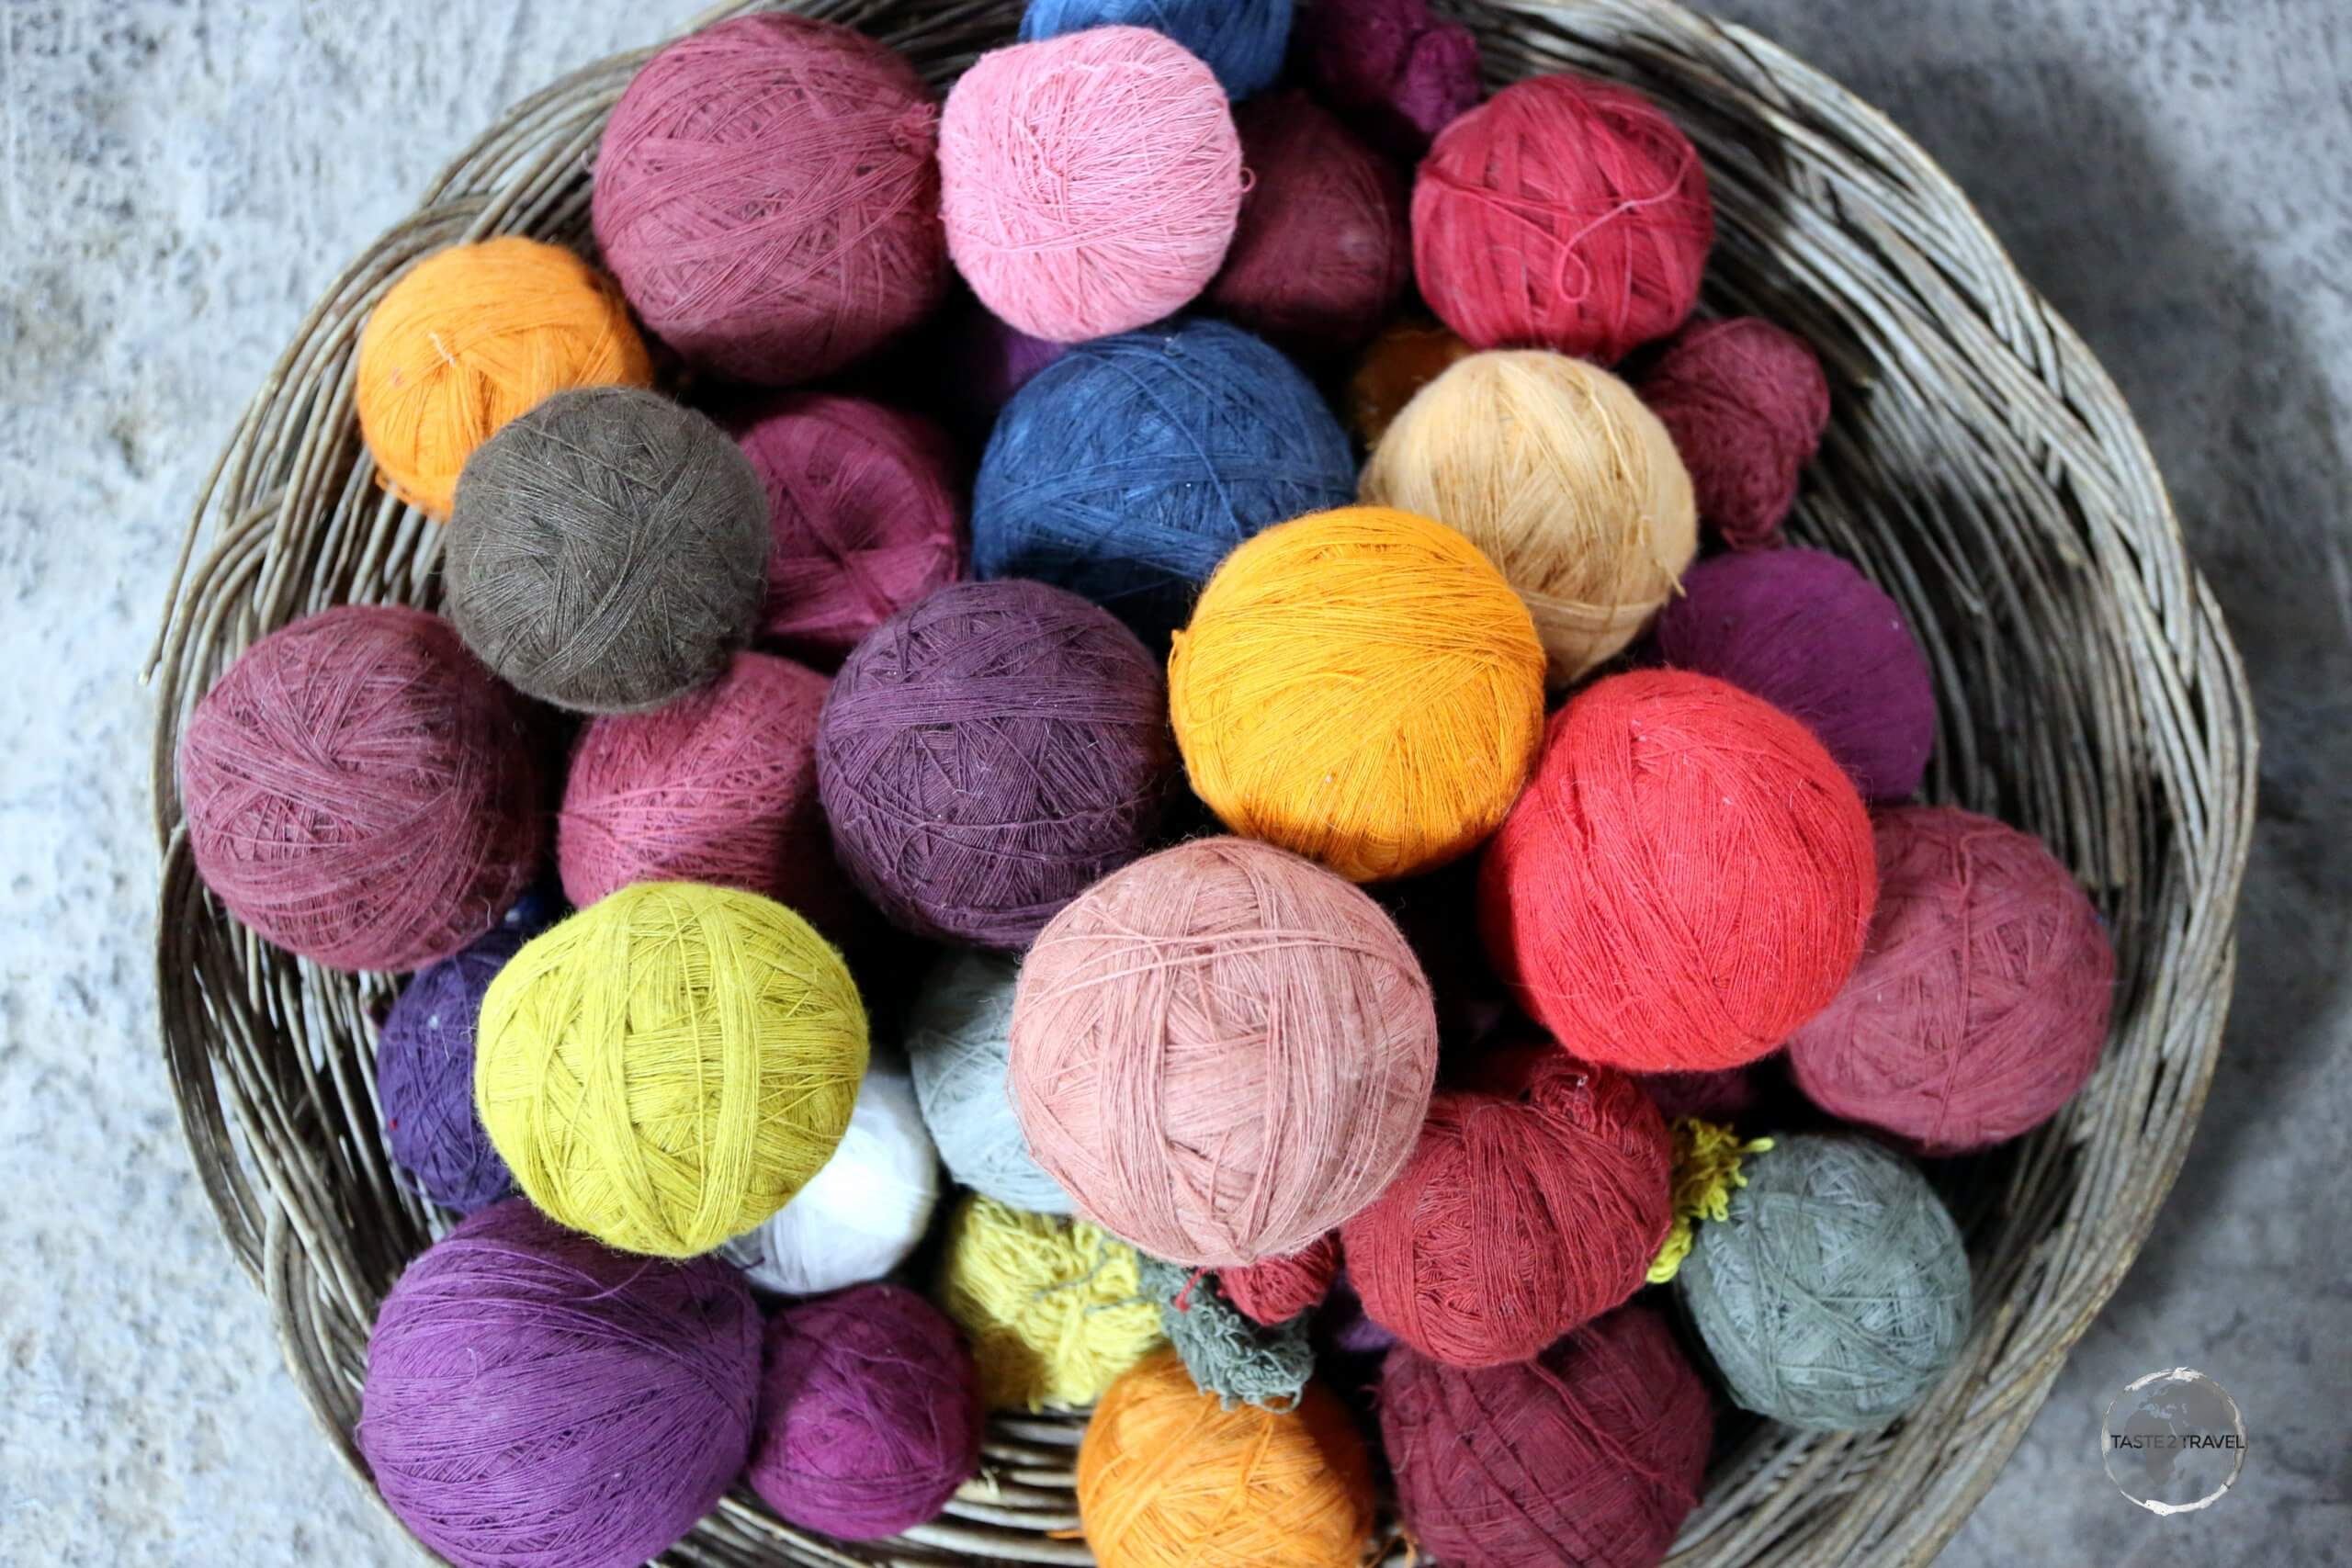 Balls of hand-spun, and hand-coloured, yarn at the 'Chinchero Centre for Traditional Culture', where local Quechua woman weave colourful, high-quality textiles.